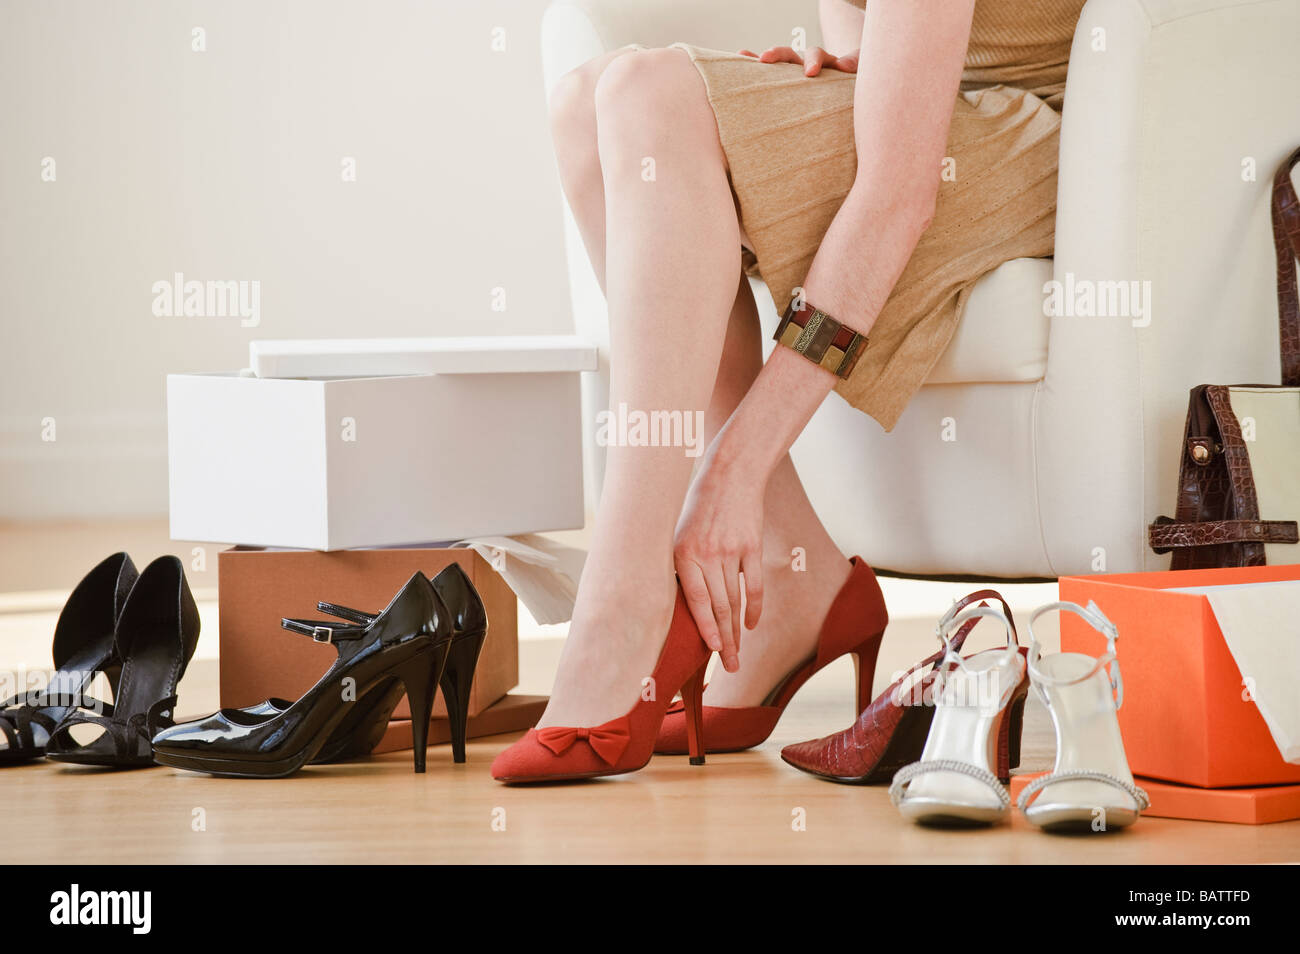 Woman trying on high heel shoes in shop - Stock Image